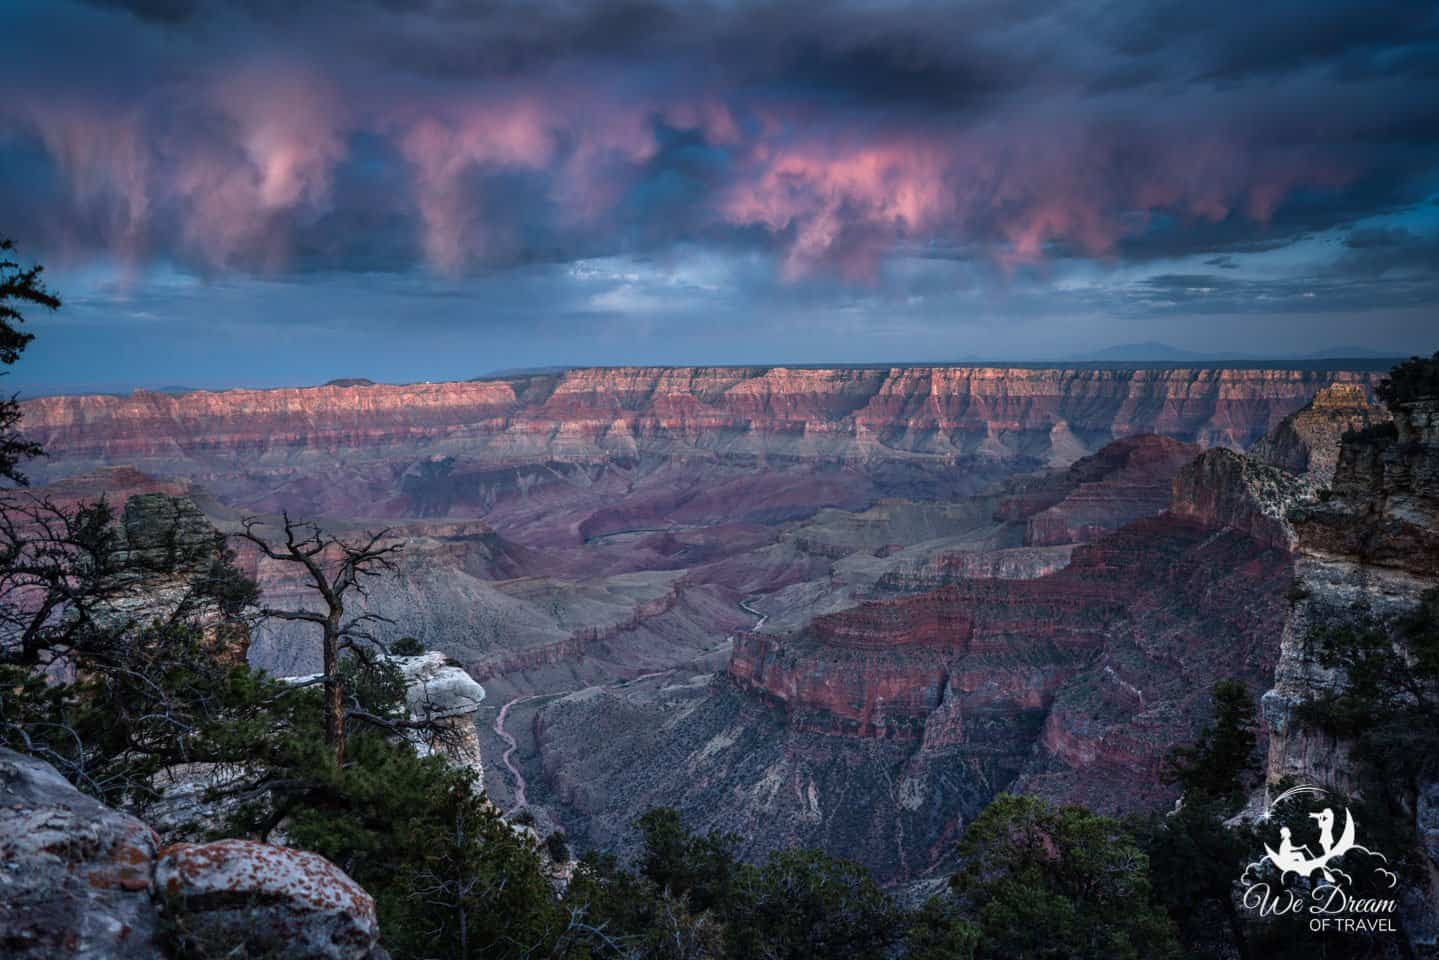 Walhalla Overlook is a good option for capturing the reverse-sunset colors that often occur in the Grand Canyon.